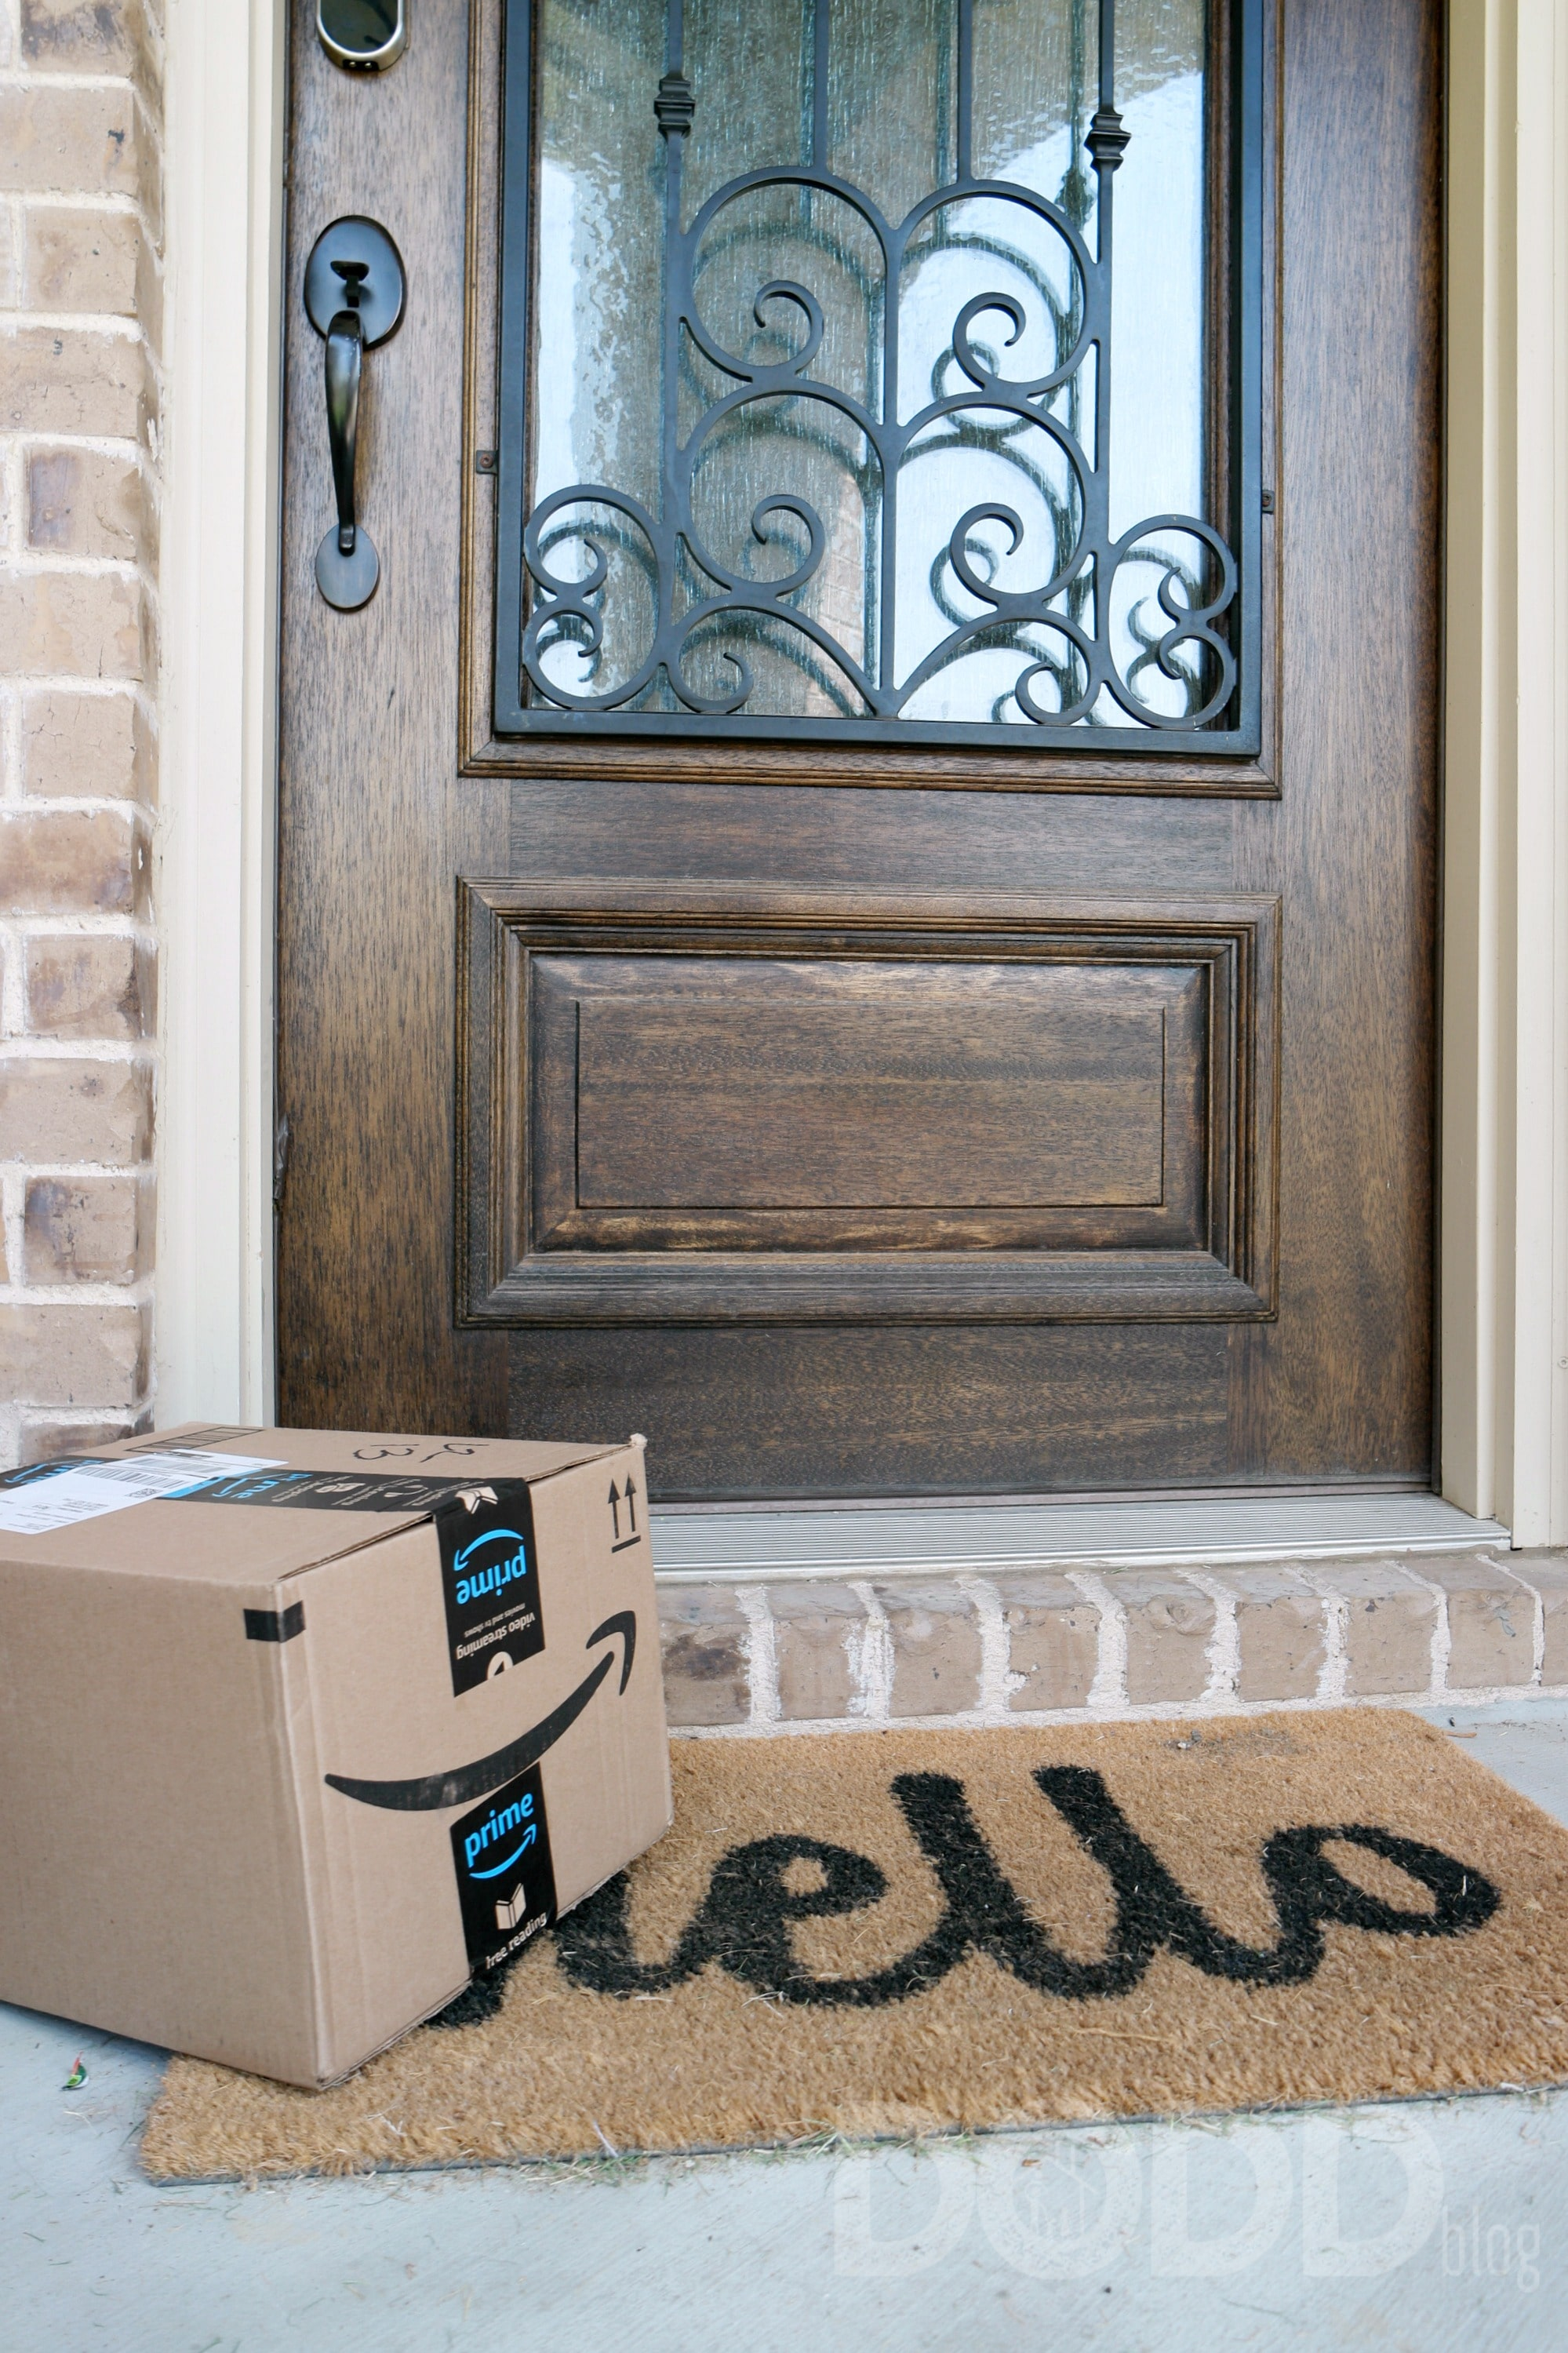 Amazon package front door